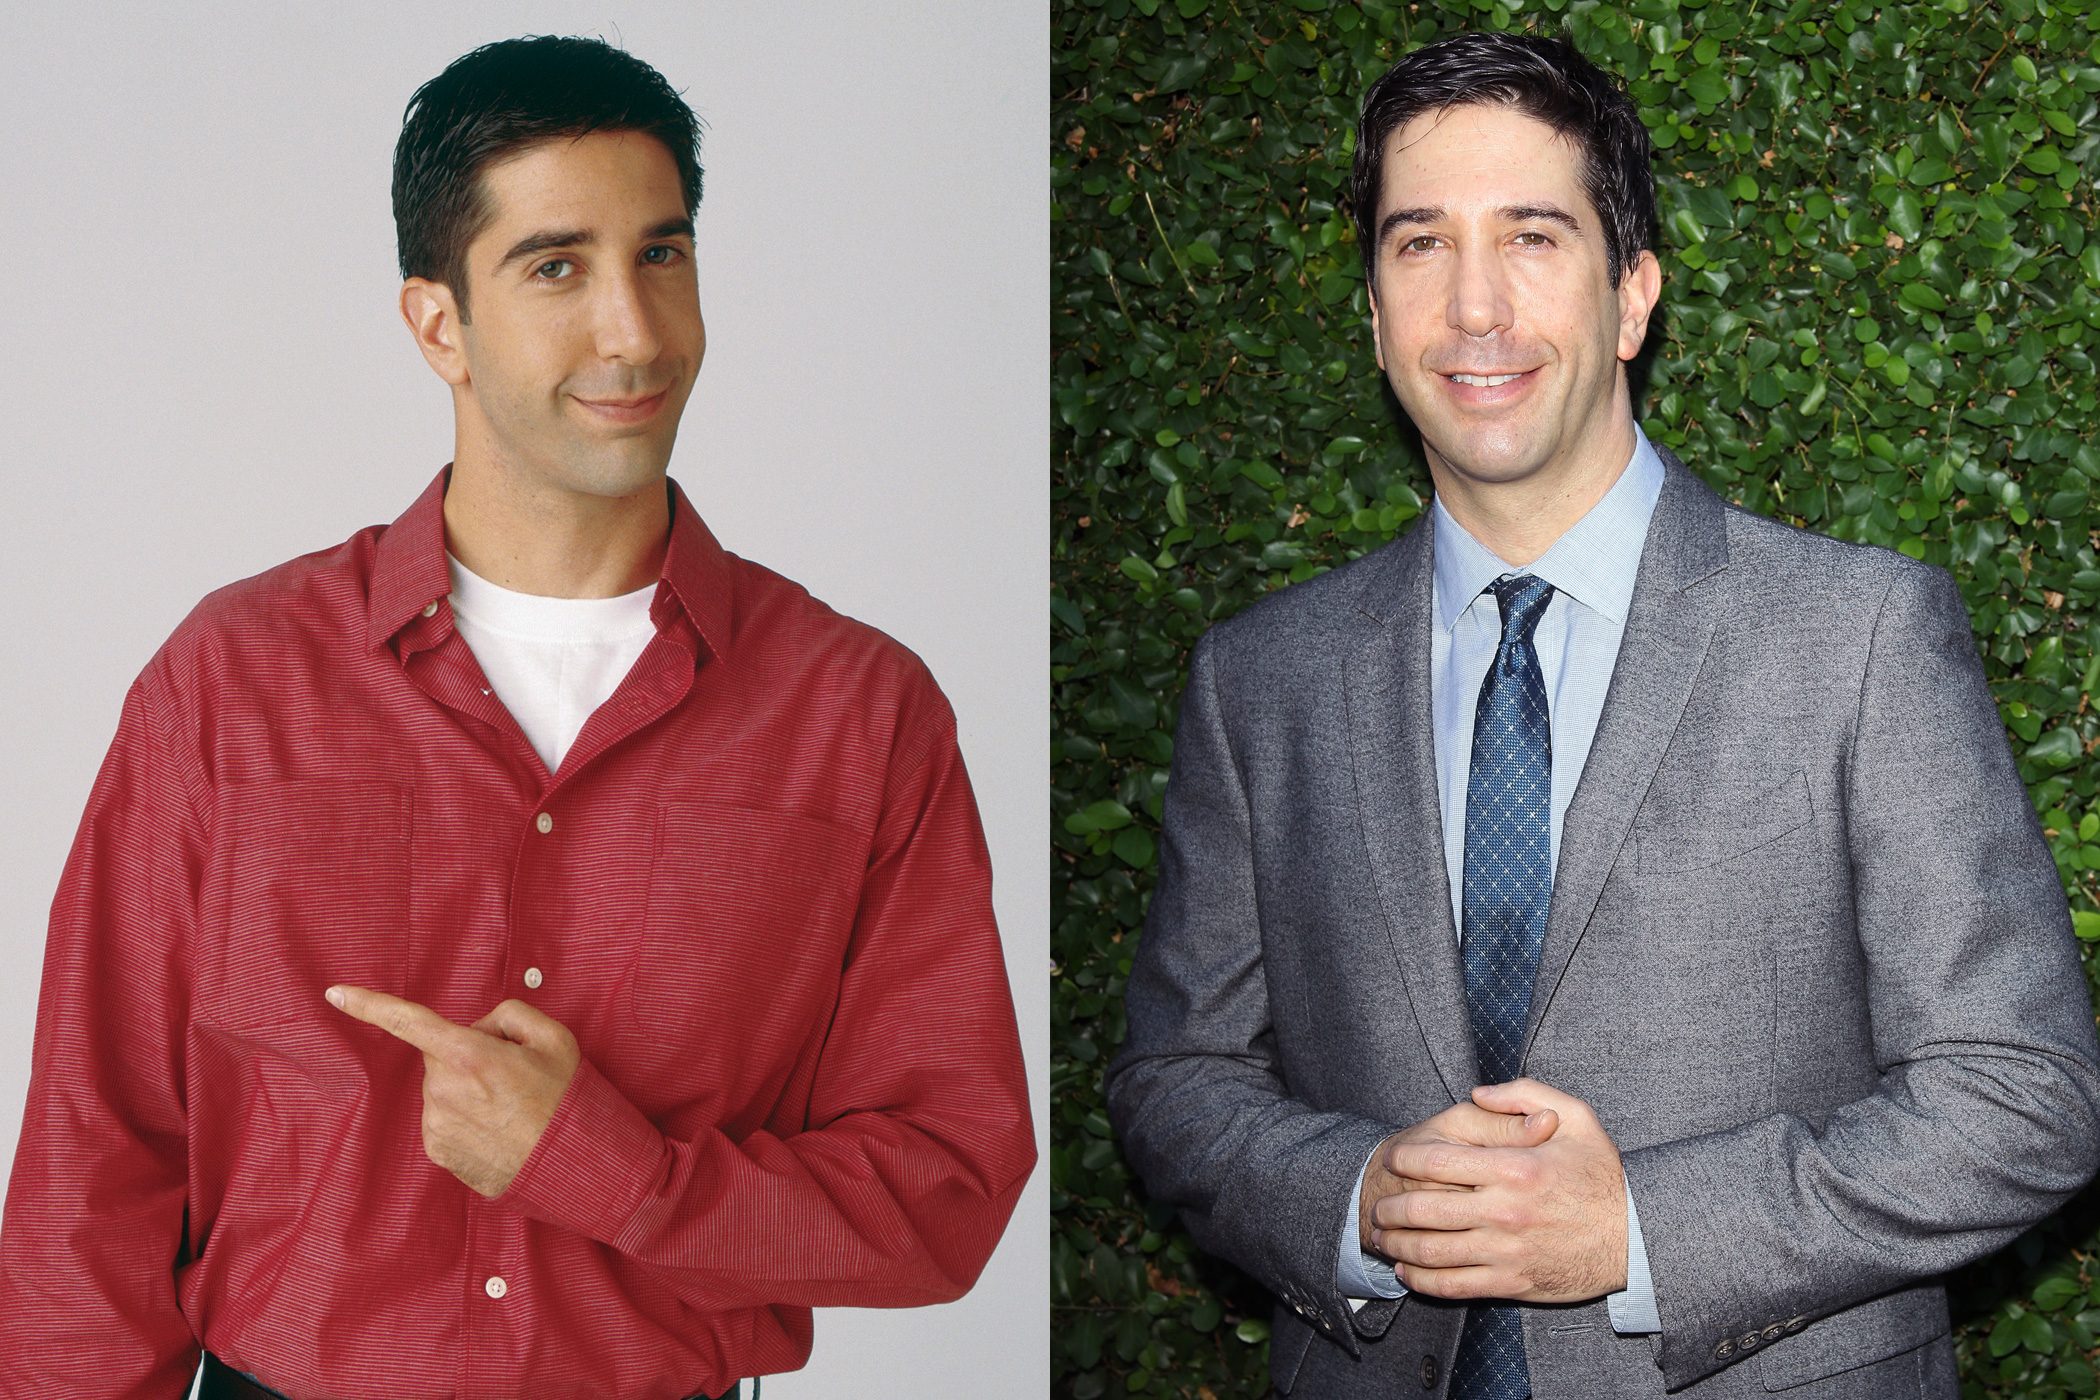 <strong>6. David Schwimmer (Ross Geller)</strong>                                   Poor Ross. Schwimmer slowly faded from the public eye since <i>Friends</i> ended. His biggest role was as the voice of Melman the giraffe in the <i>Madagascar</i> movies.